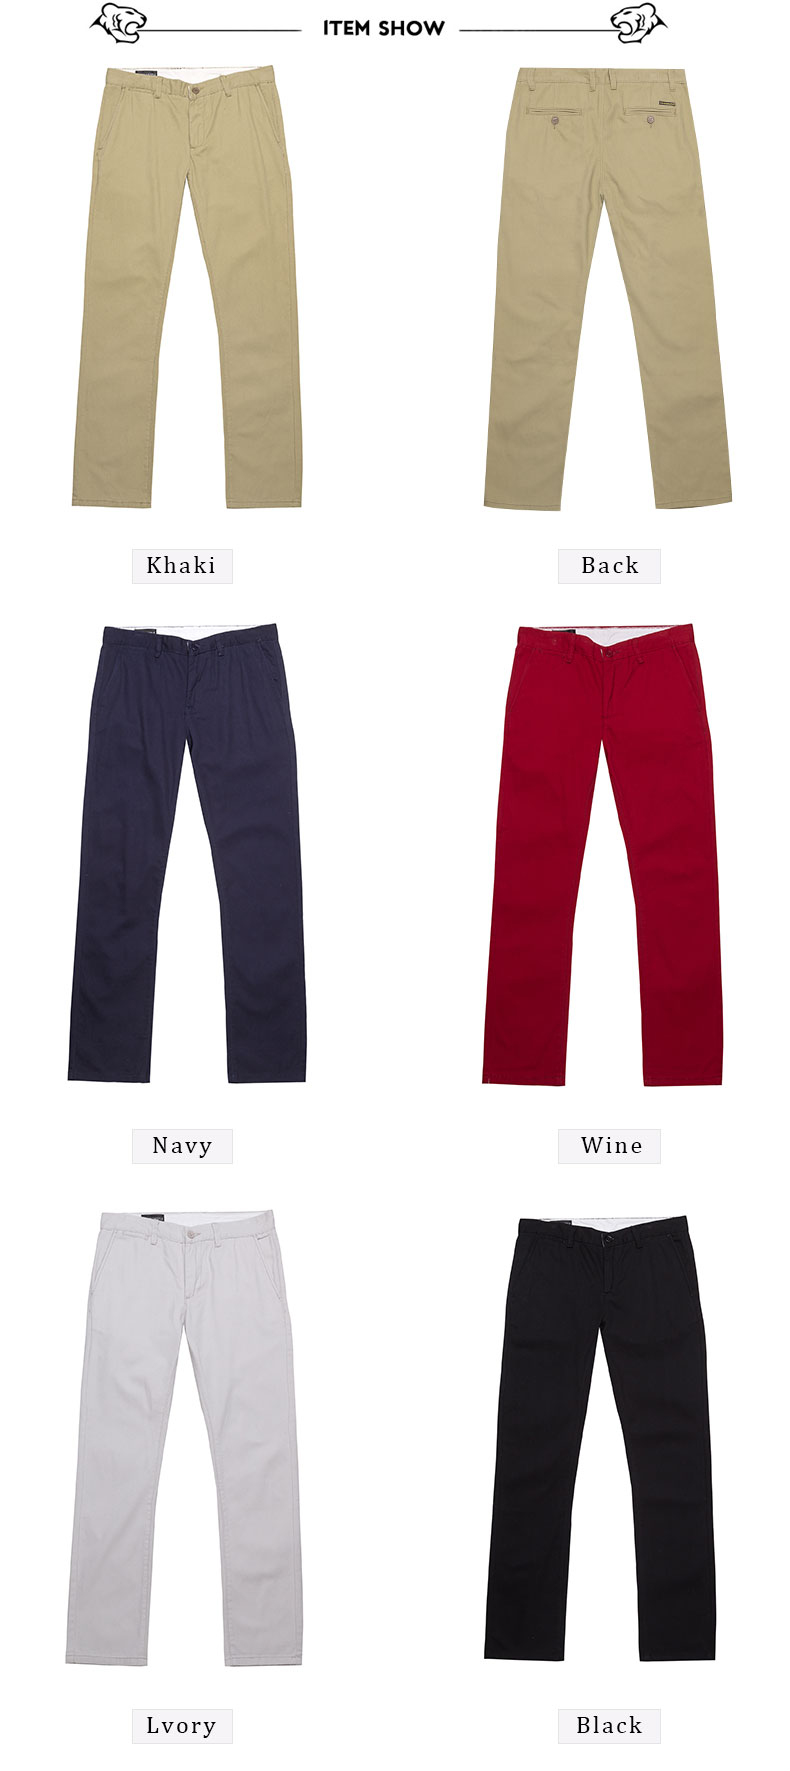 Spring Solid Mens Casual Pants Cotton Stretch Black Mens Slim Fit Long Trousers Fashion Zipper Fly High Quality Brand Clothing 21